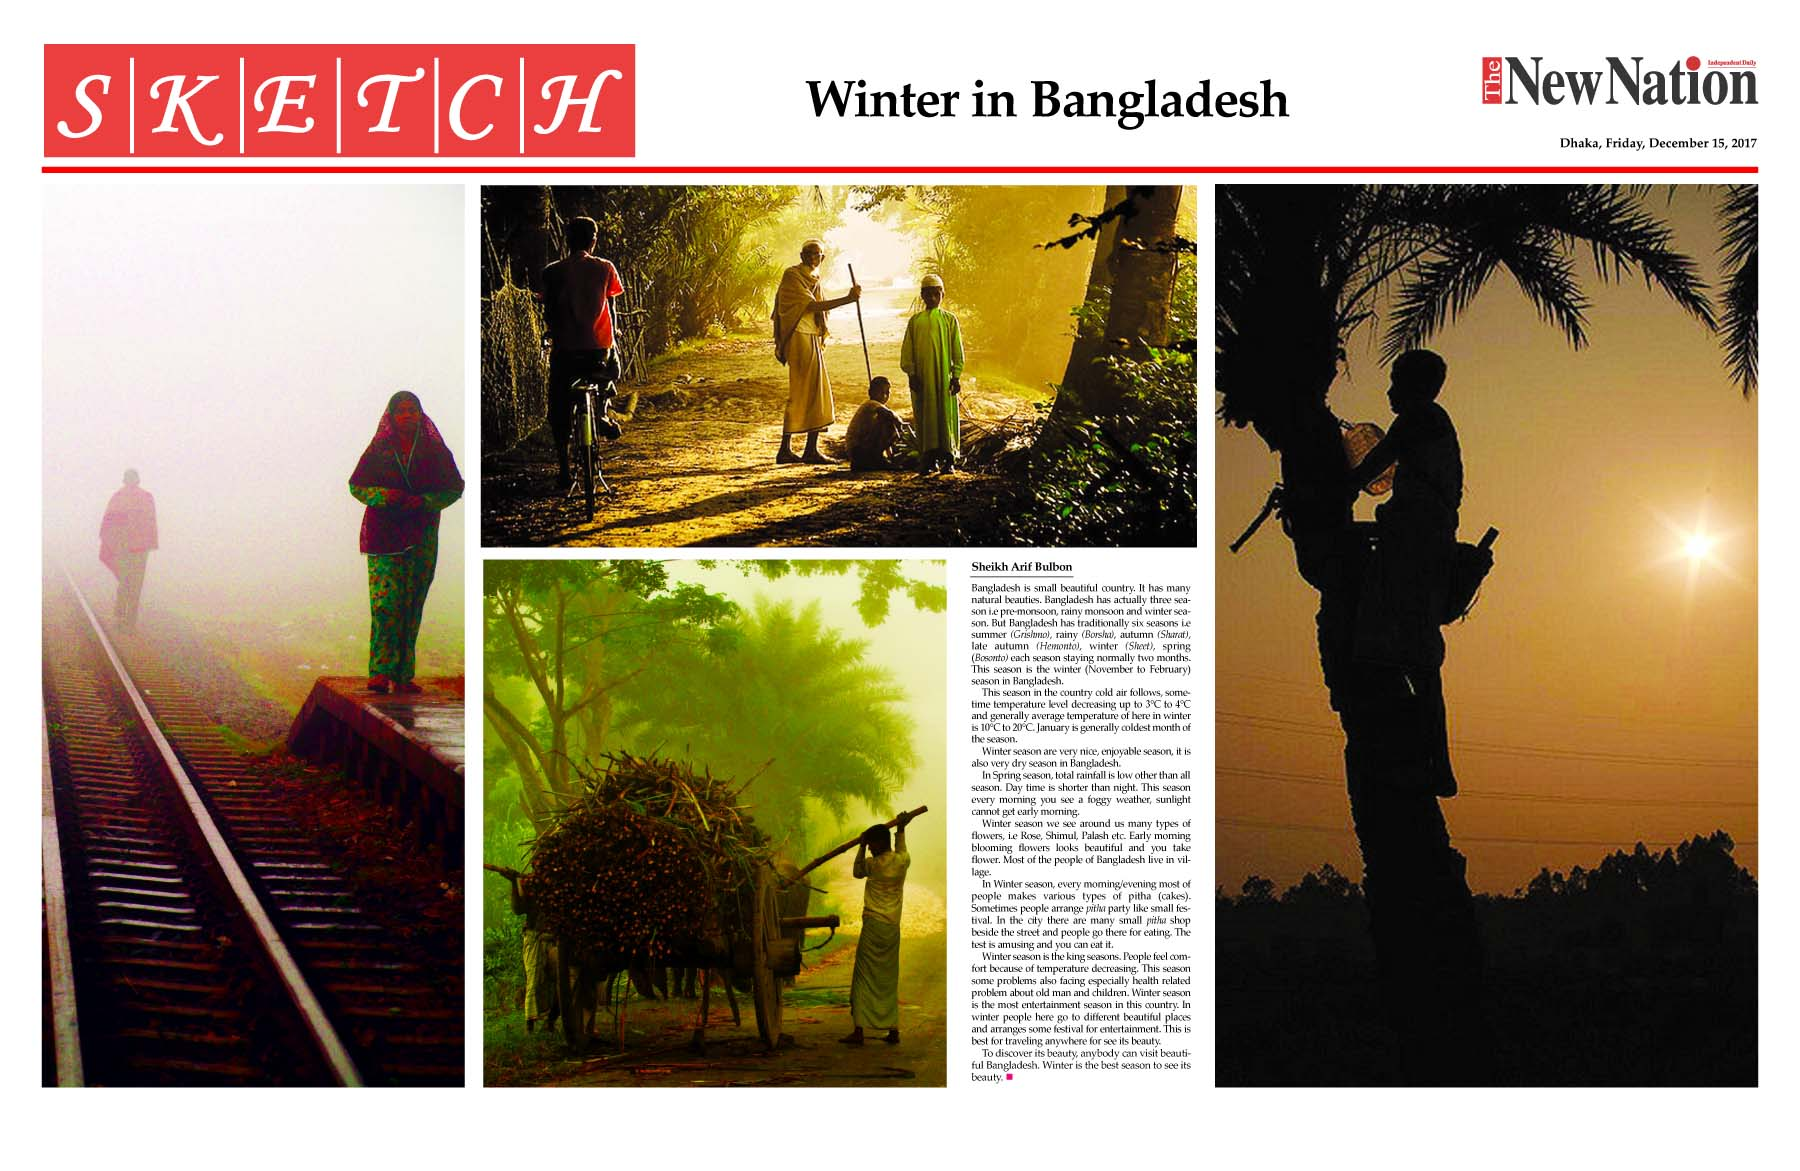 Winter in Bangladesh